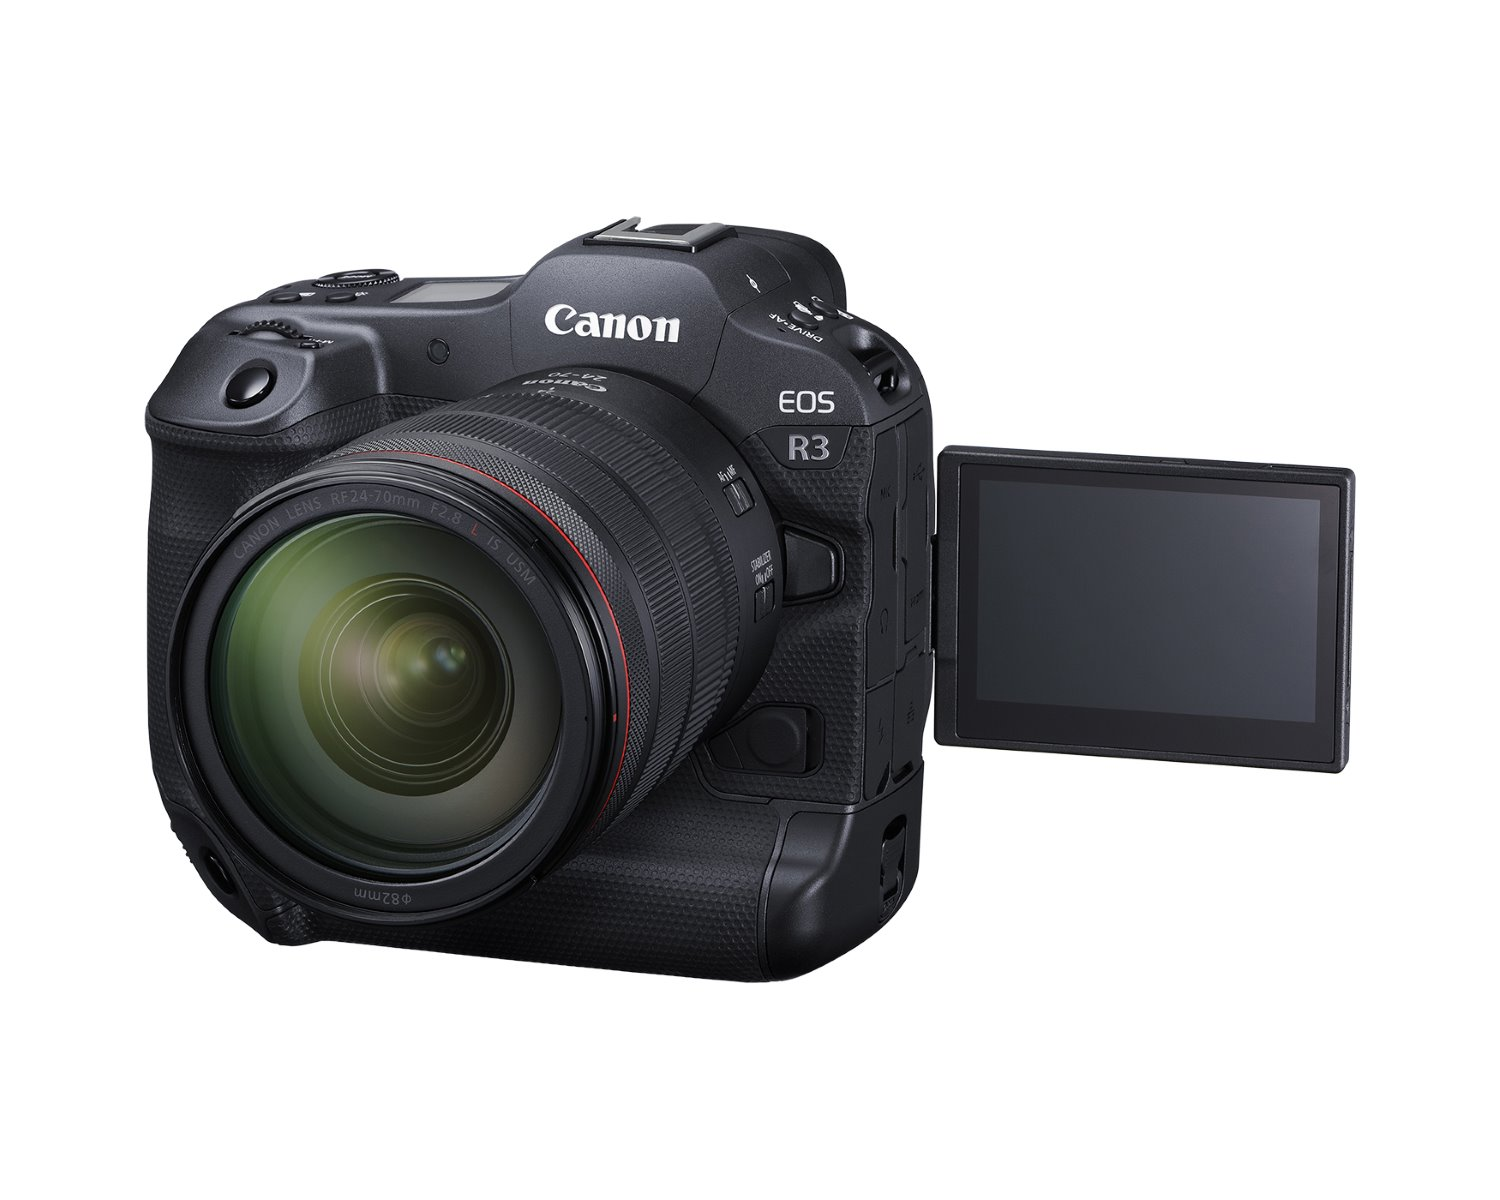 Canon EOS R3 with a fully articulating screen